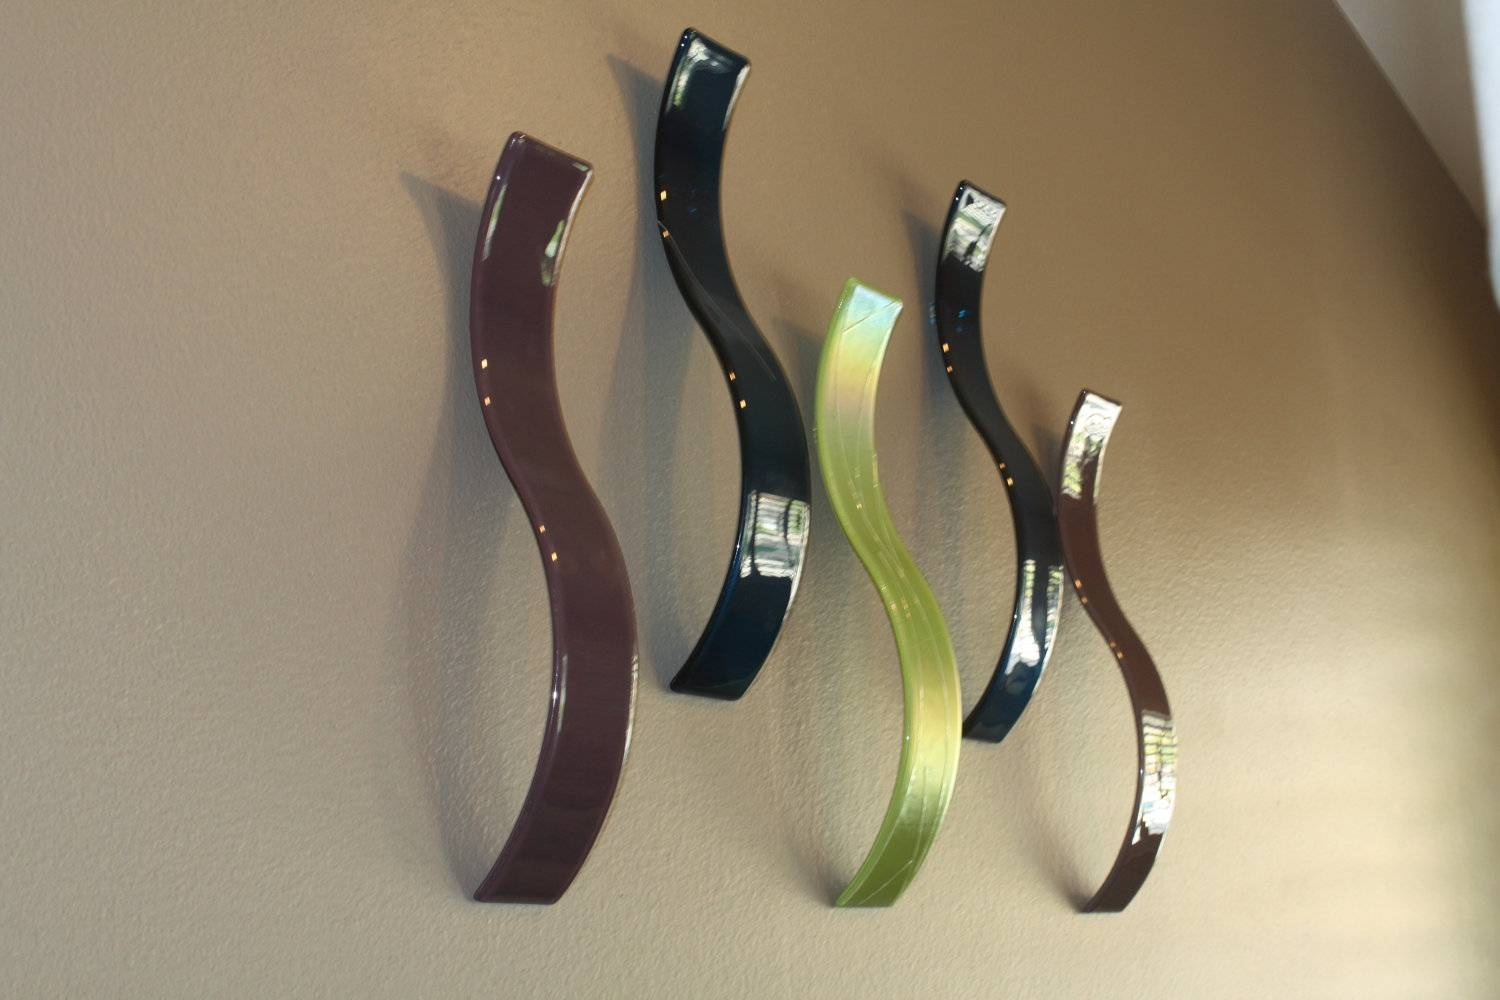 Custom Fused Glass Wall Art / Sculpture Waves Set Of 5 Inside Most Recent Fused Glass Wall Art (View 13 of 25)